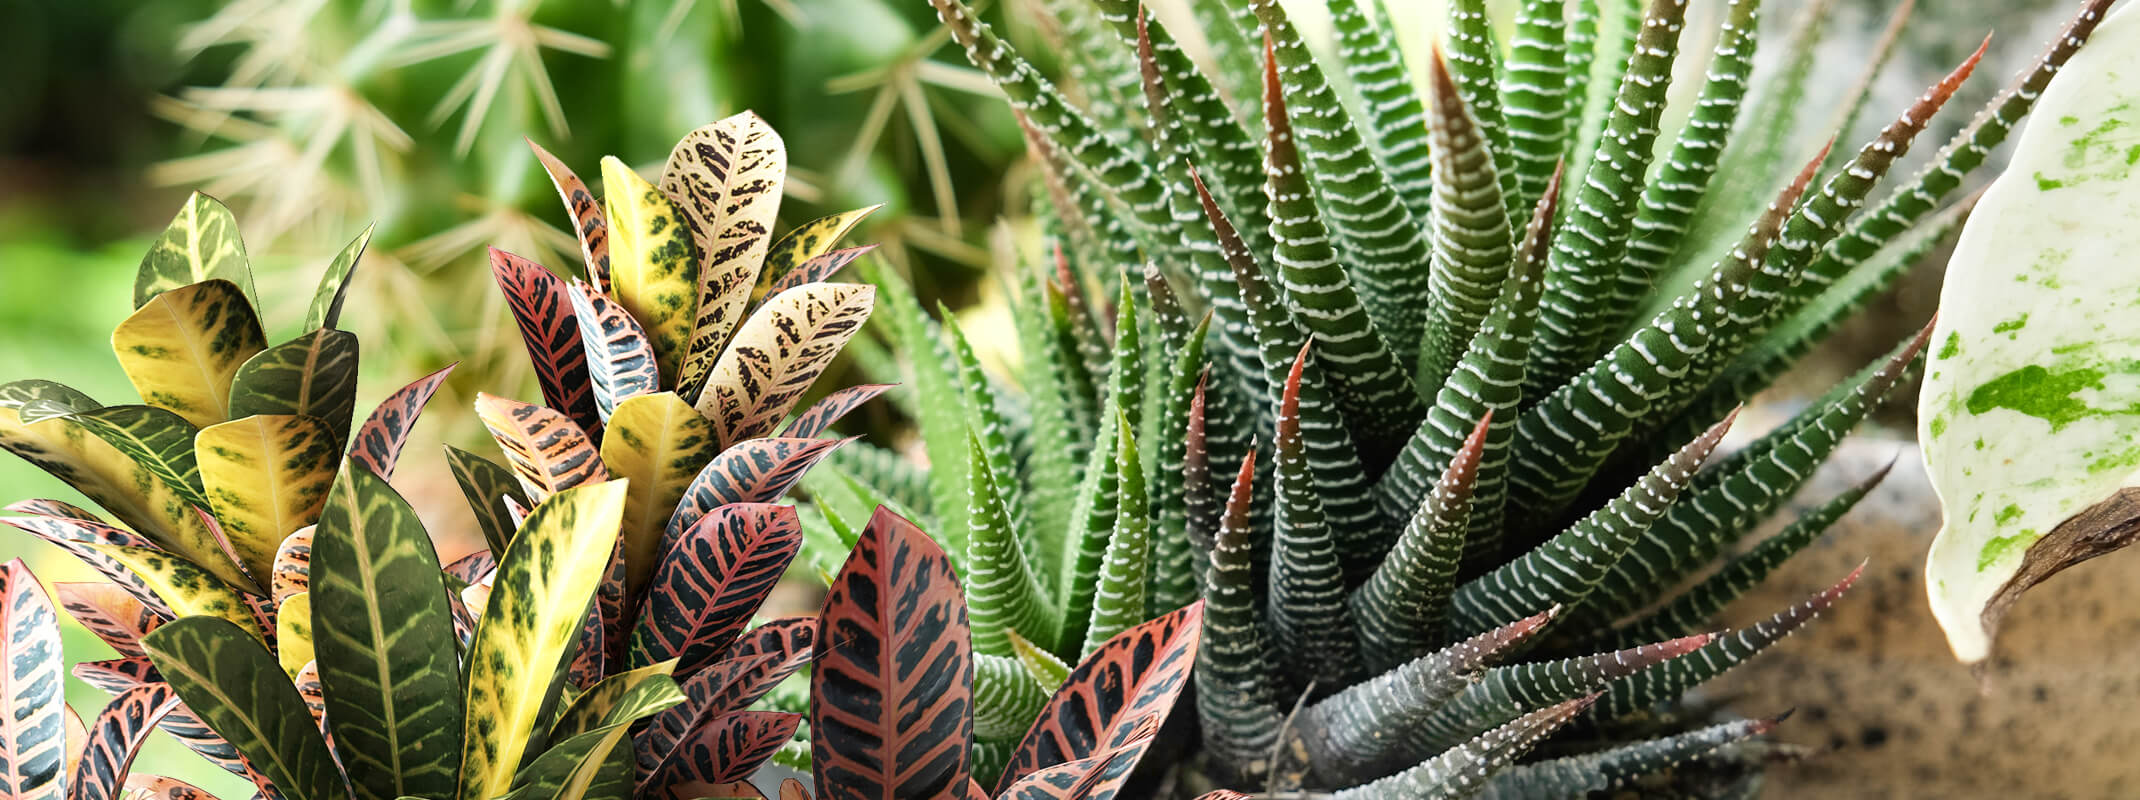 houseplants that love the light which included crotons, cactus and succulents